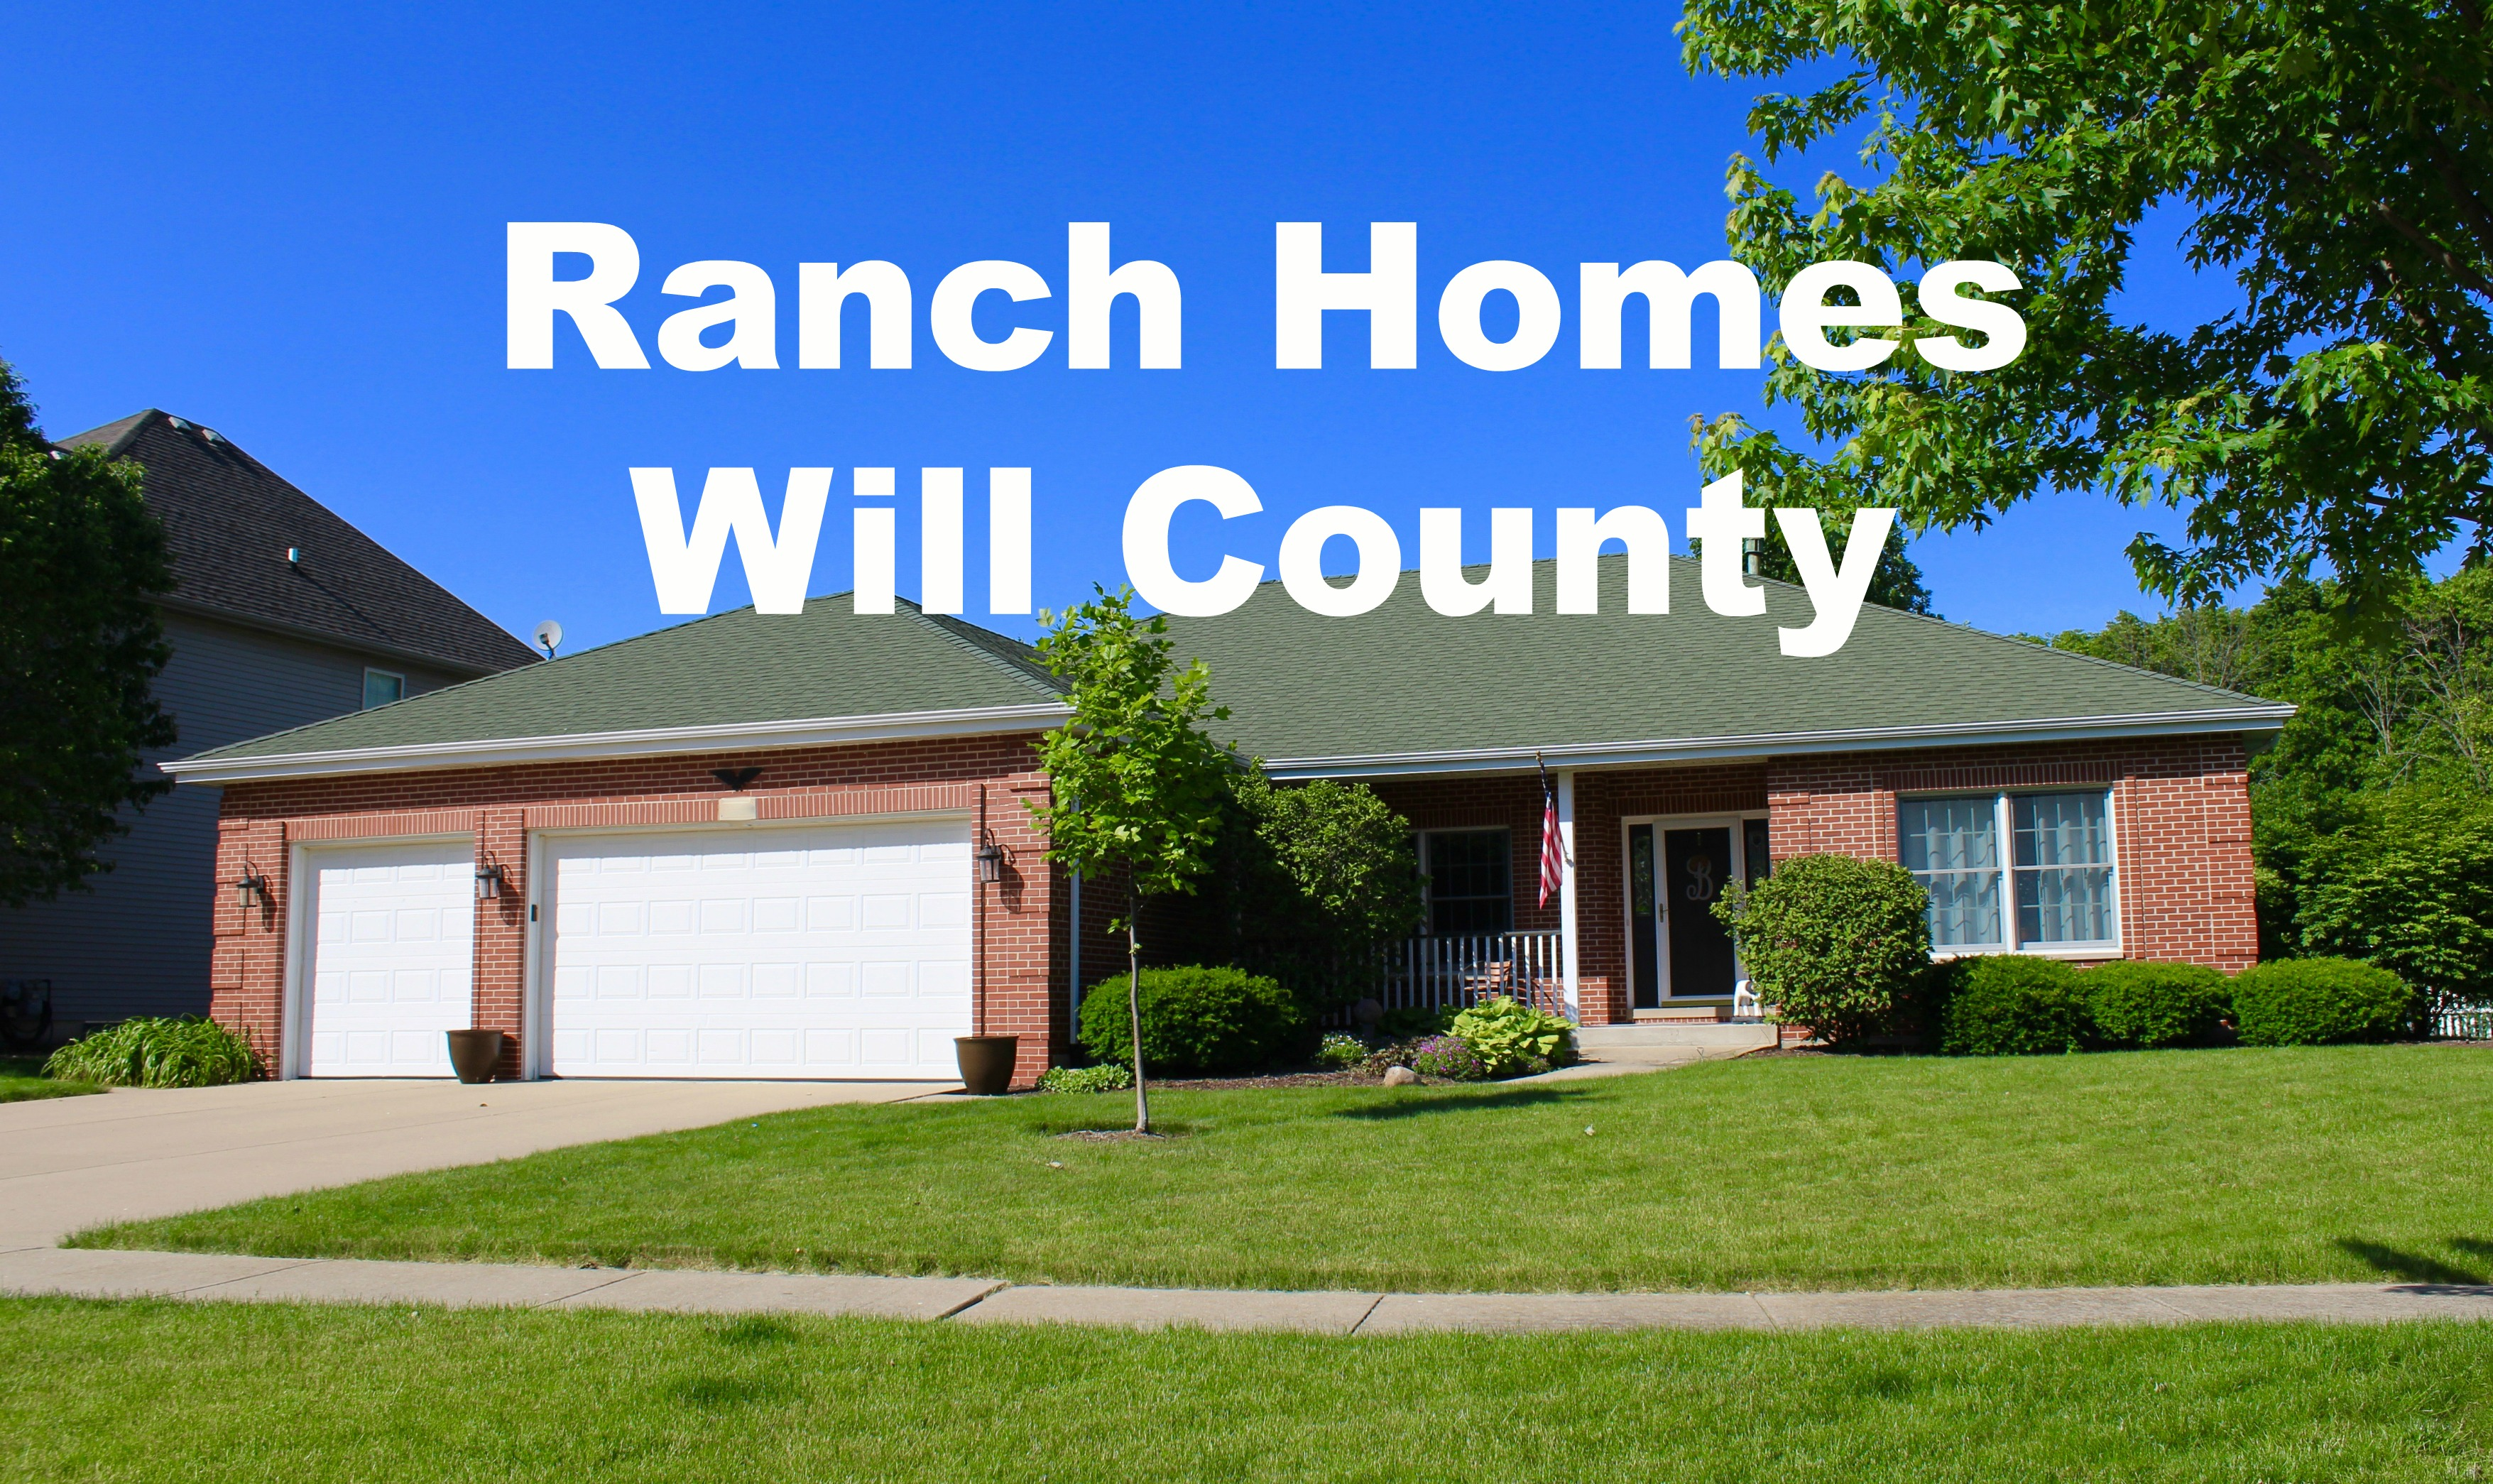 Ranch Homes Will County